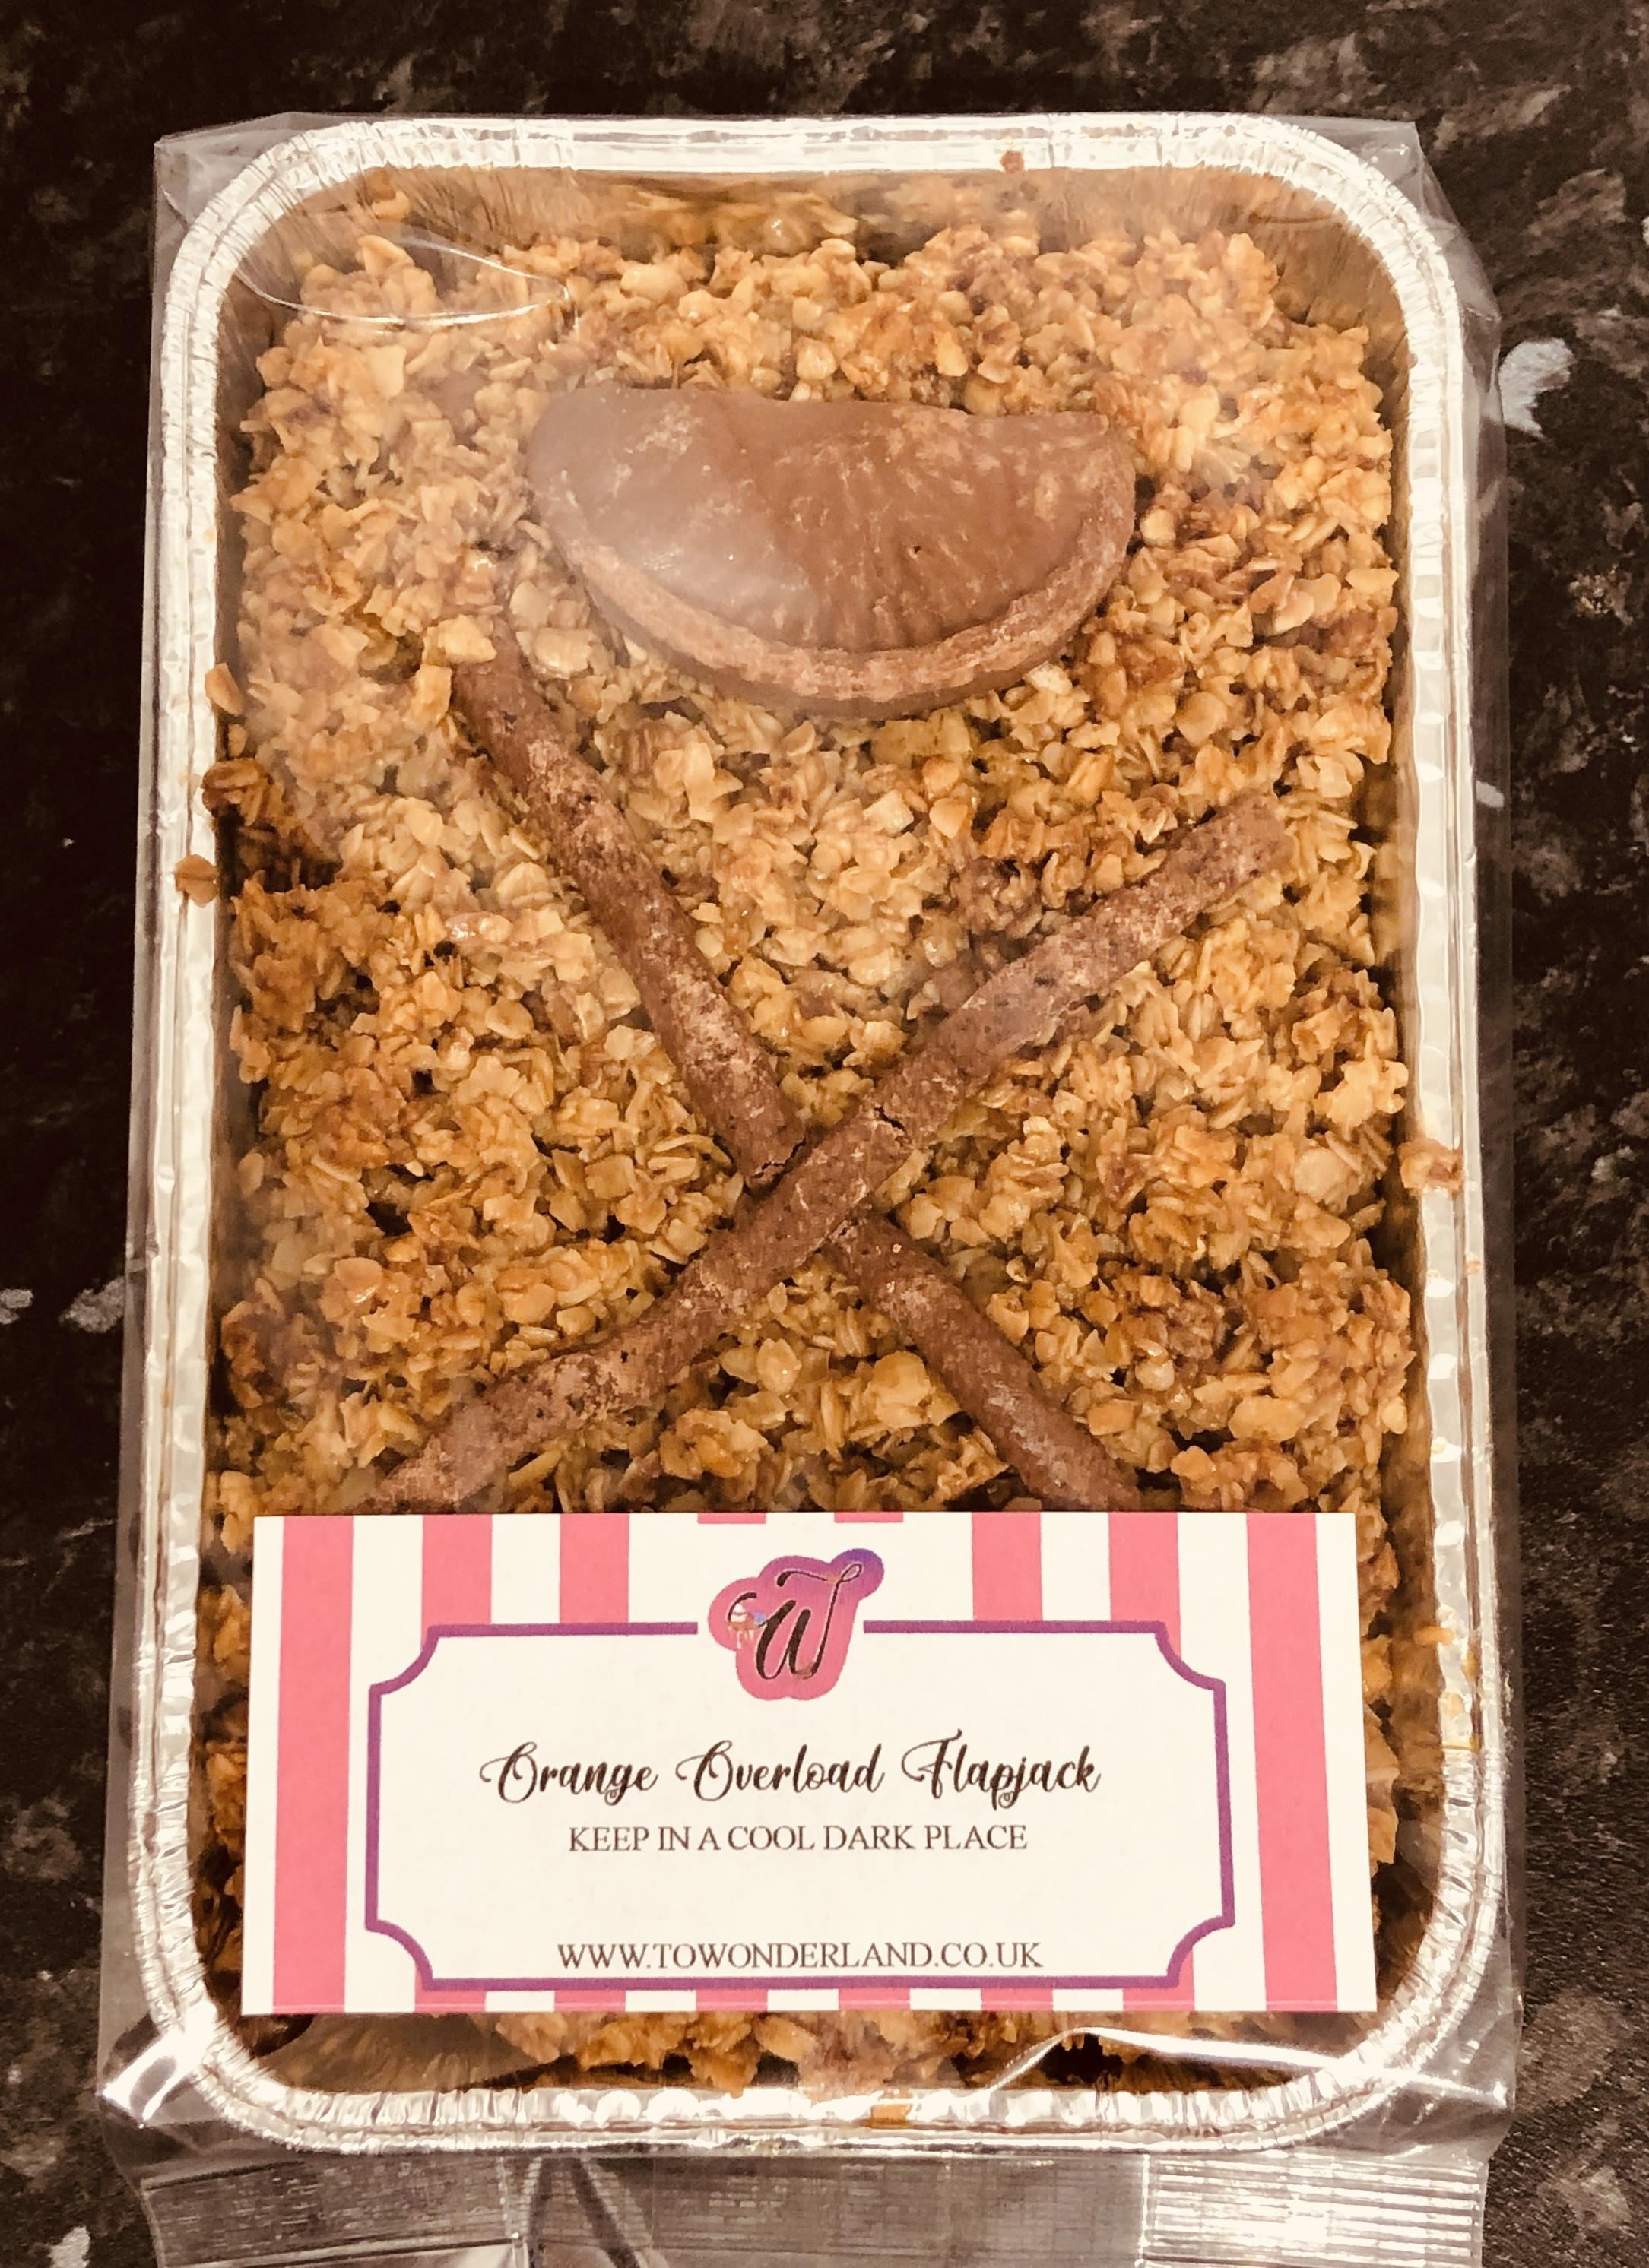 Terrys Chocolate Orange Flapjack Tray